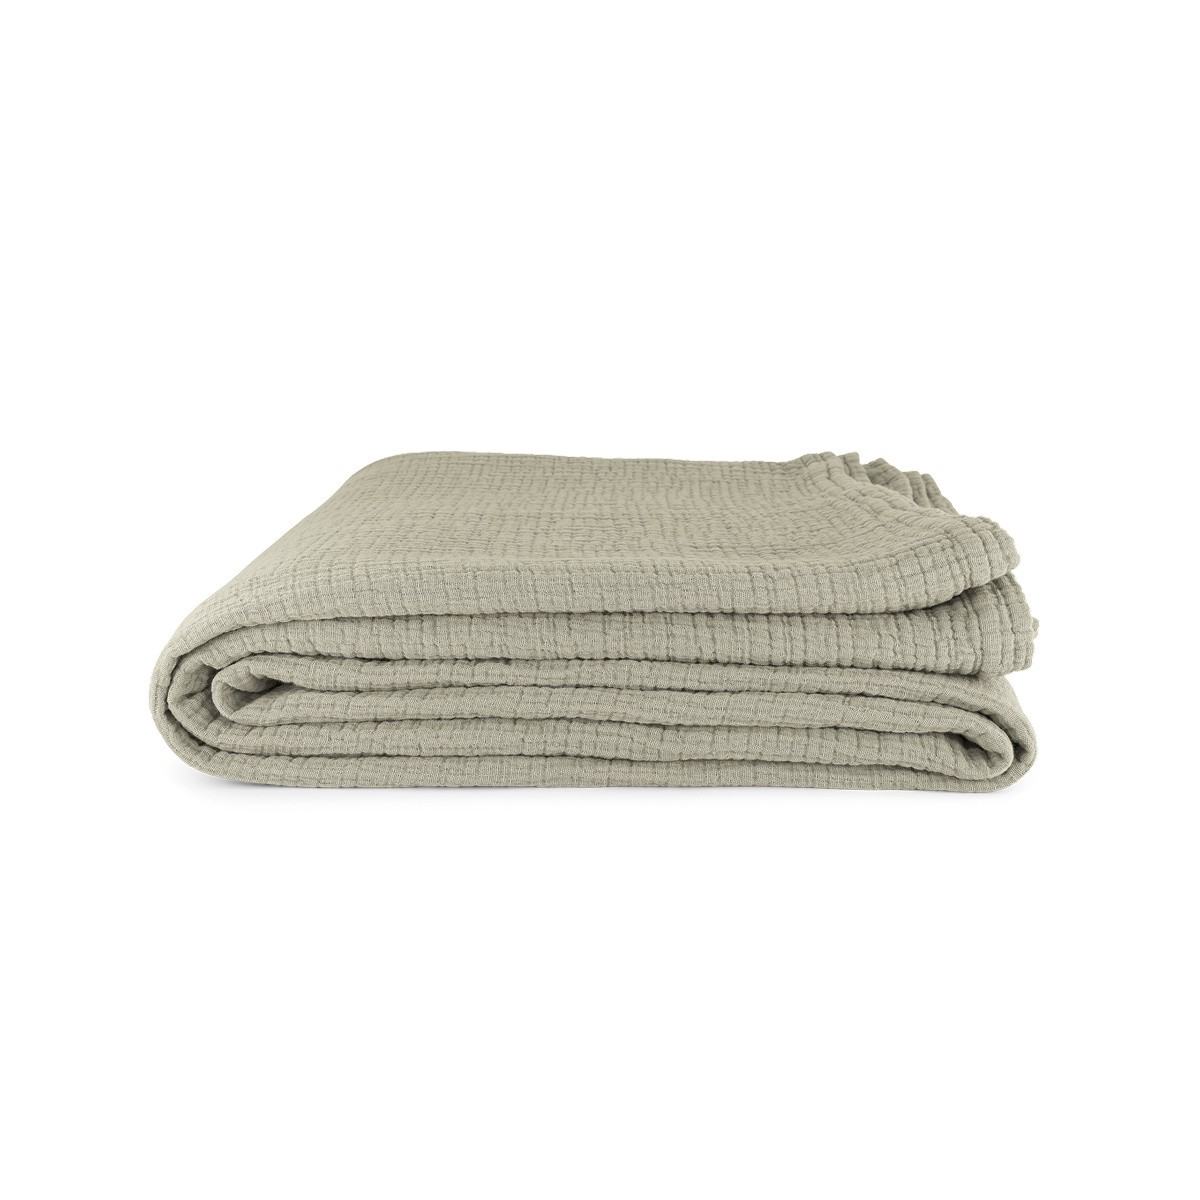 Allegra Tablecloth in Water Green Cotton Gauze